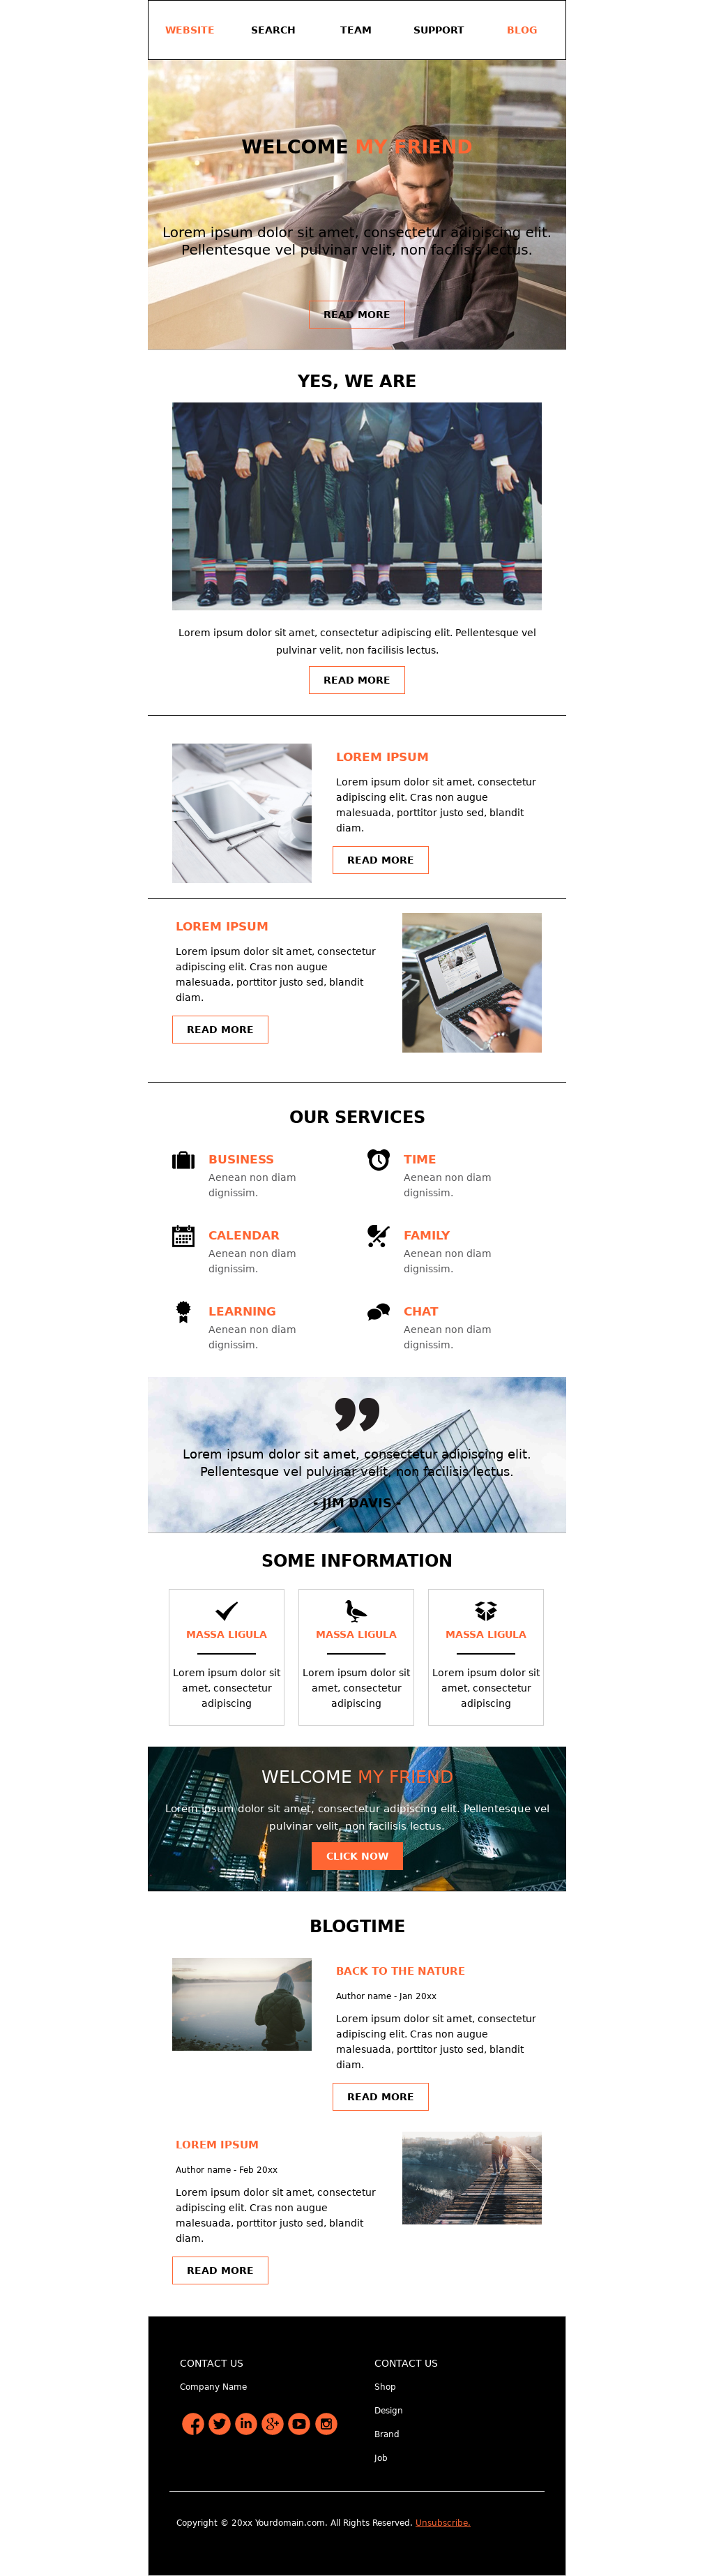 Orange colored responsive corporate newsletter template